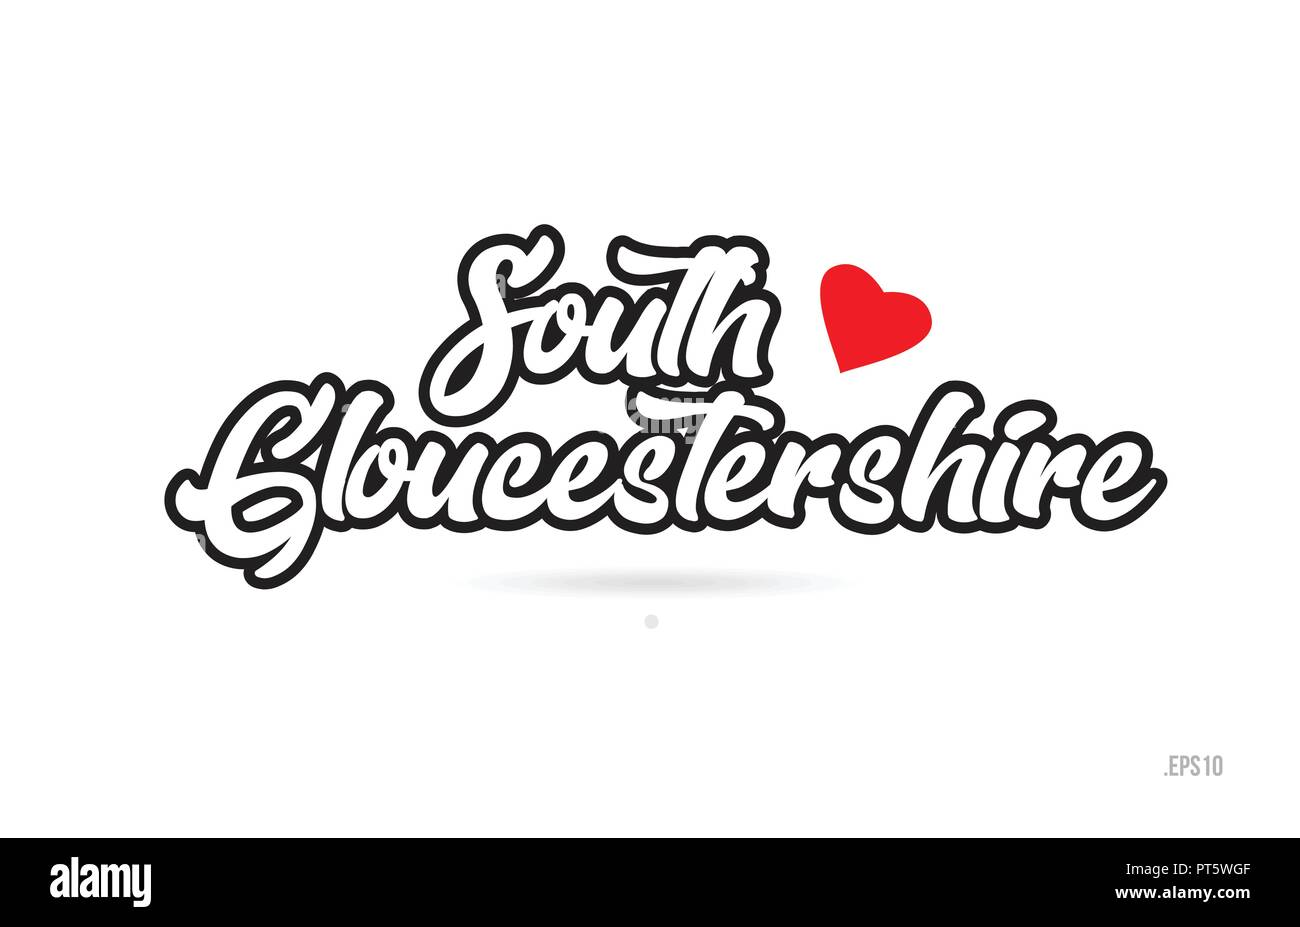 south gloucestershire city text design with red heart typographic icon design suitable for touristic promotion - Stock Vector